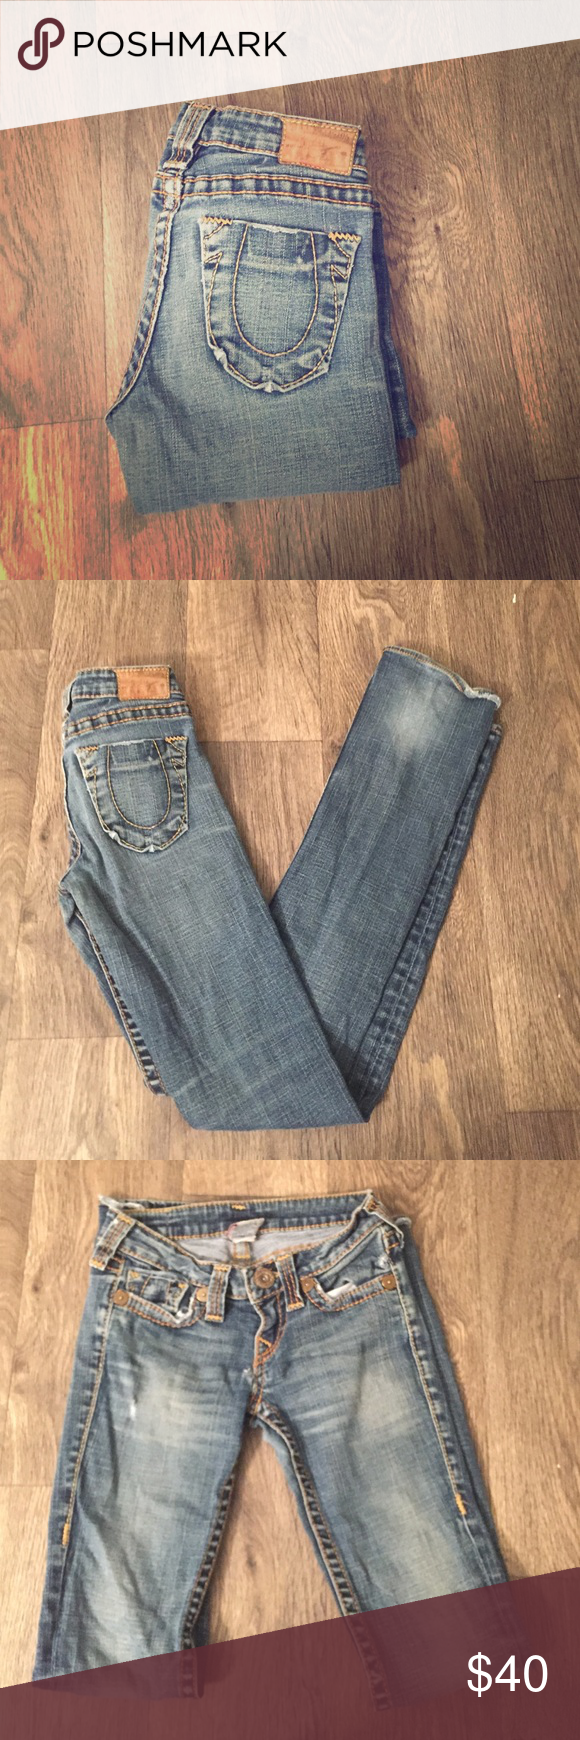 True Religion jeans True religion straight leg jeans, size 25. Hole in front of jeans as shown in picture 4 which is why they are priced lower, still super cute jeans and they have the original hem, make an offer! :) True Religion Jeans Straight Leg